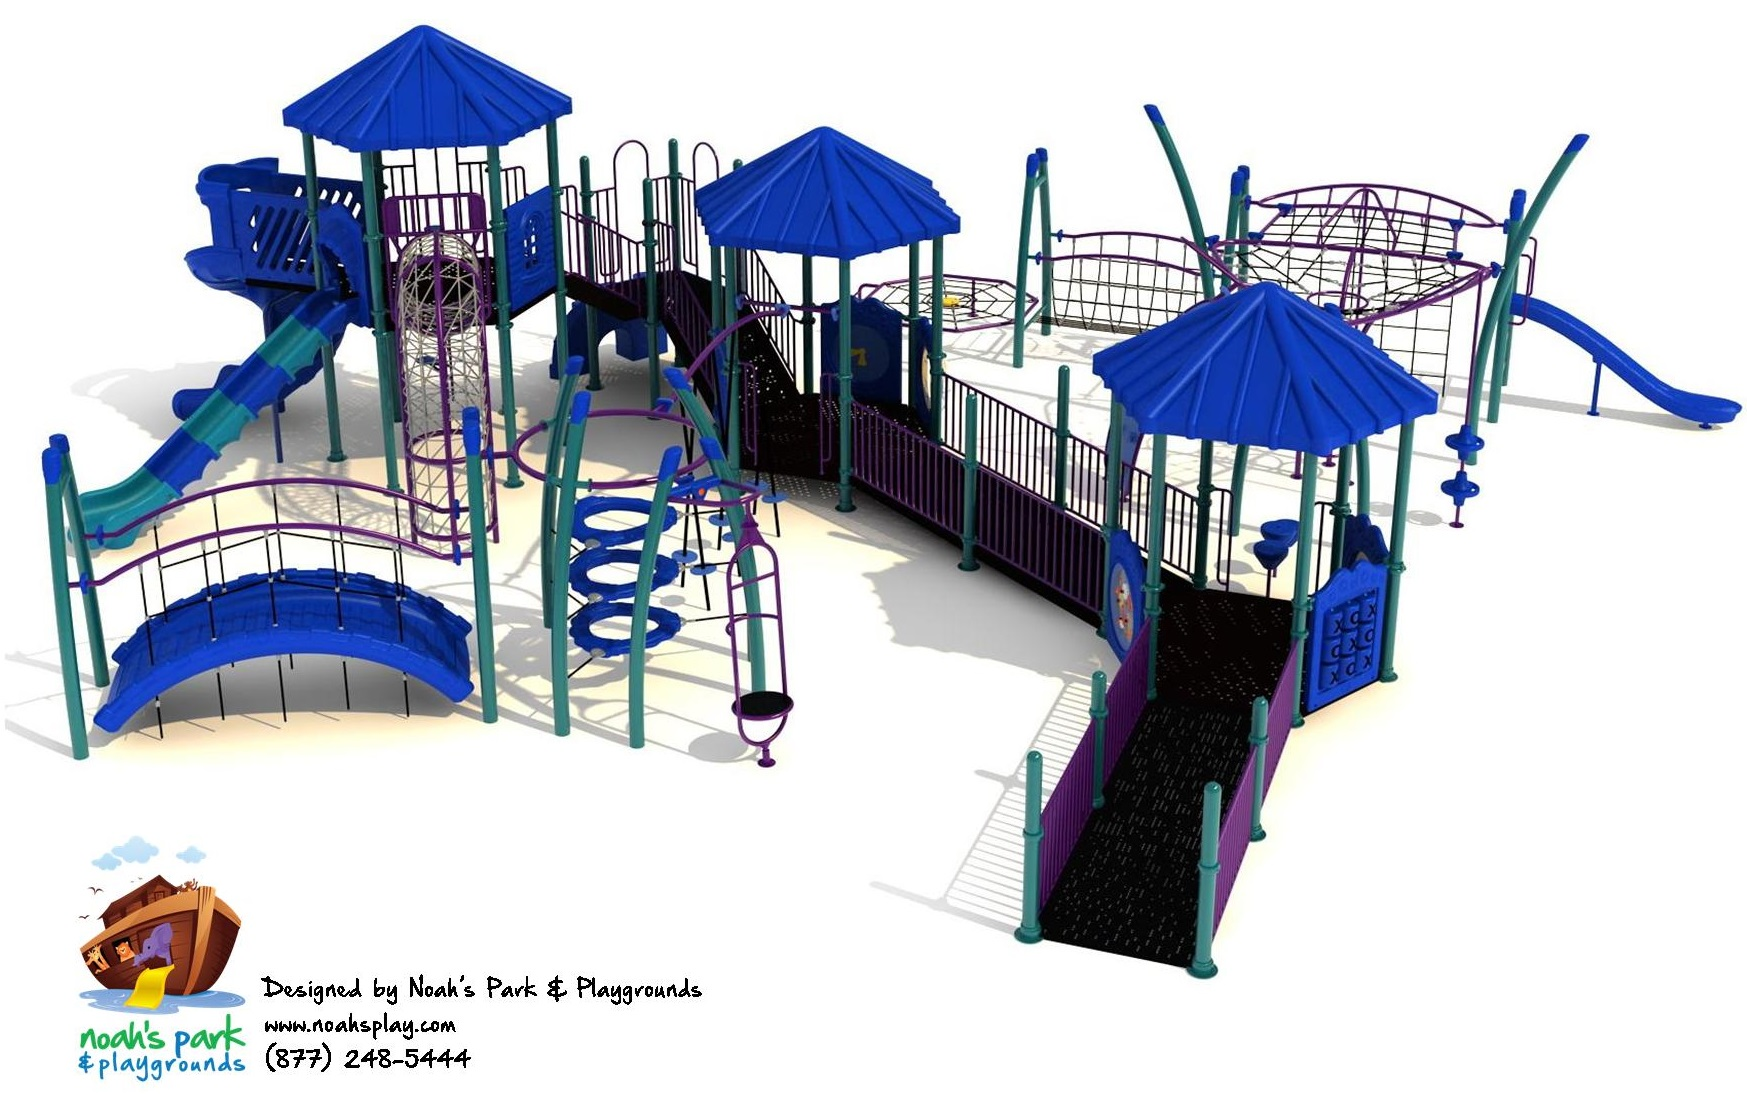 Noah's Park and Playgrounds Chosen to Design and Install Six New ...